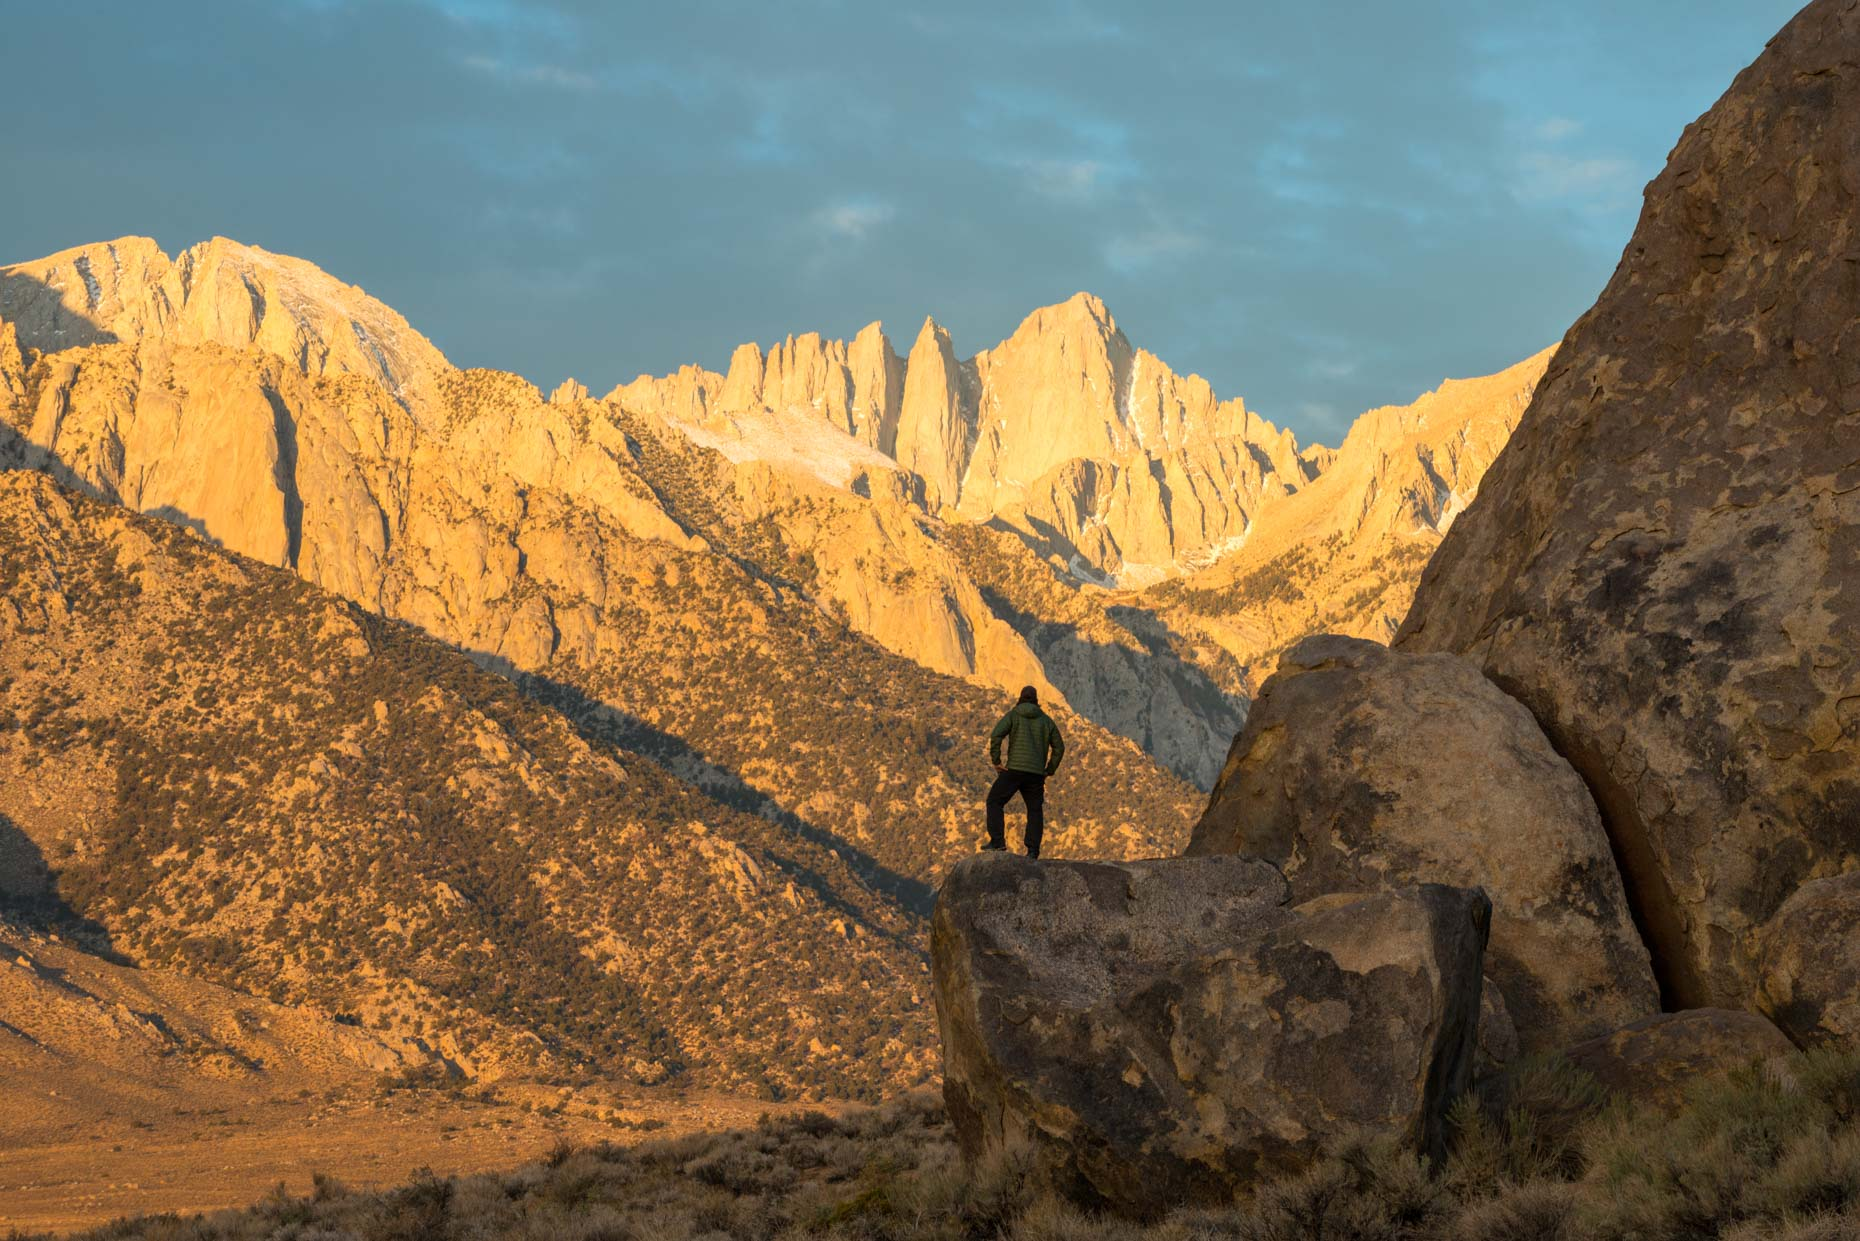 Watching Sunrise From Alabama Hills on Mount Whitney - Alabama Hills, Lone Pine, California